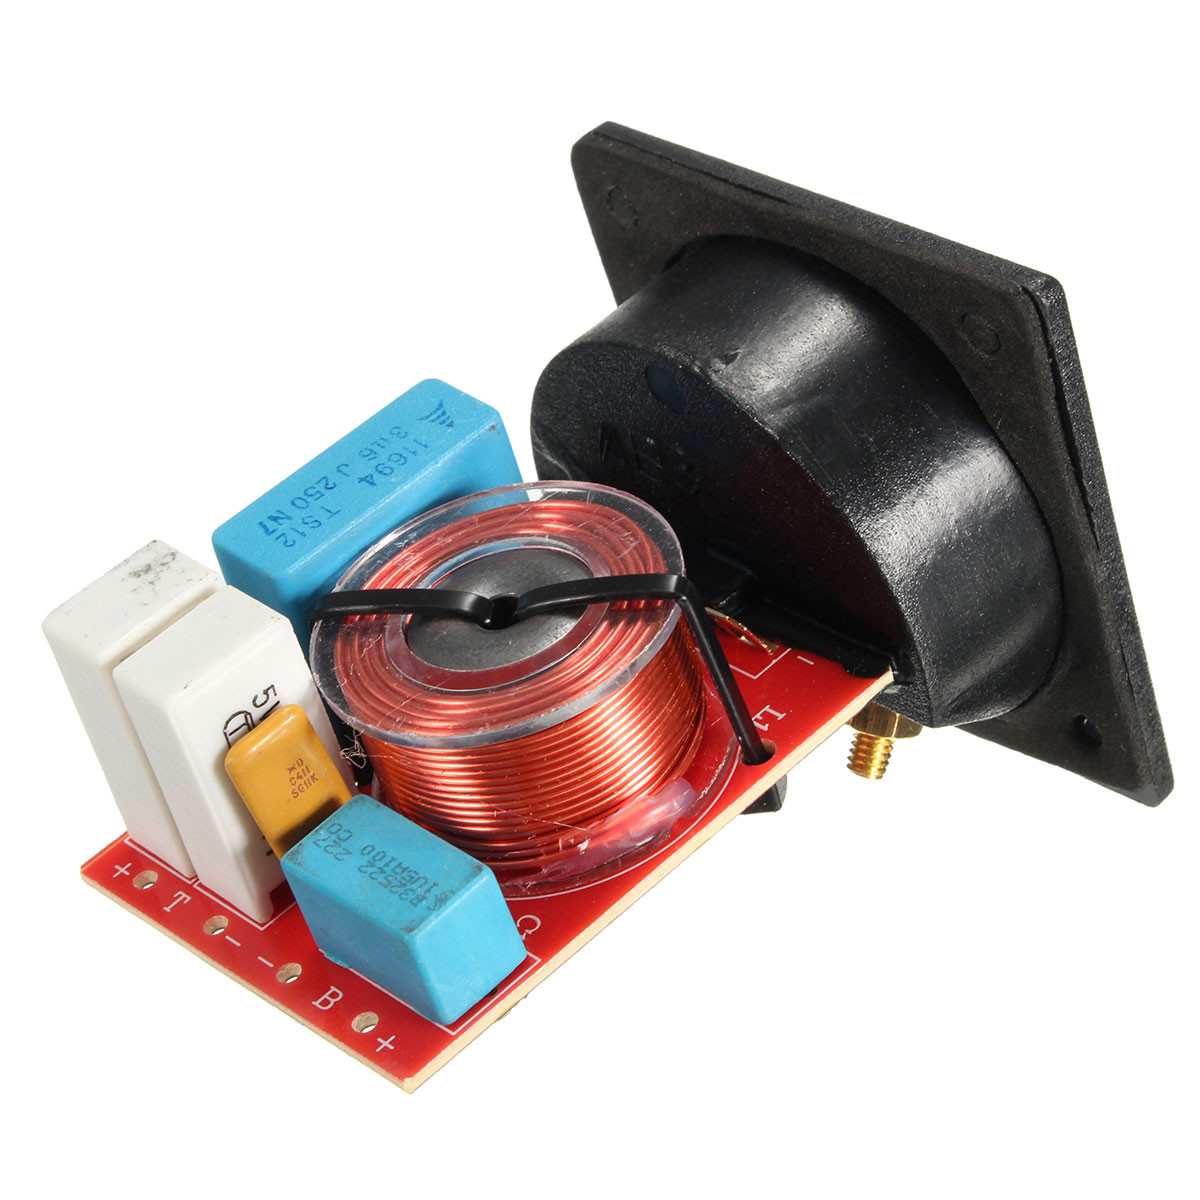 D222 80W Speaker Frequency Divider With Junction Box